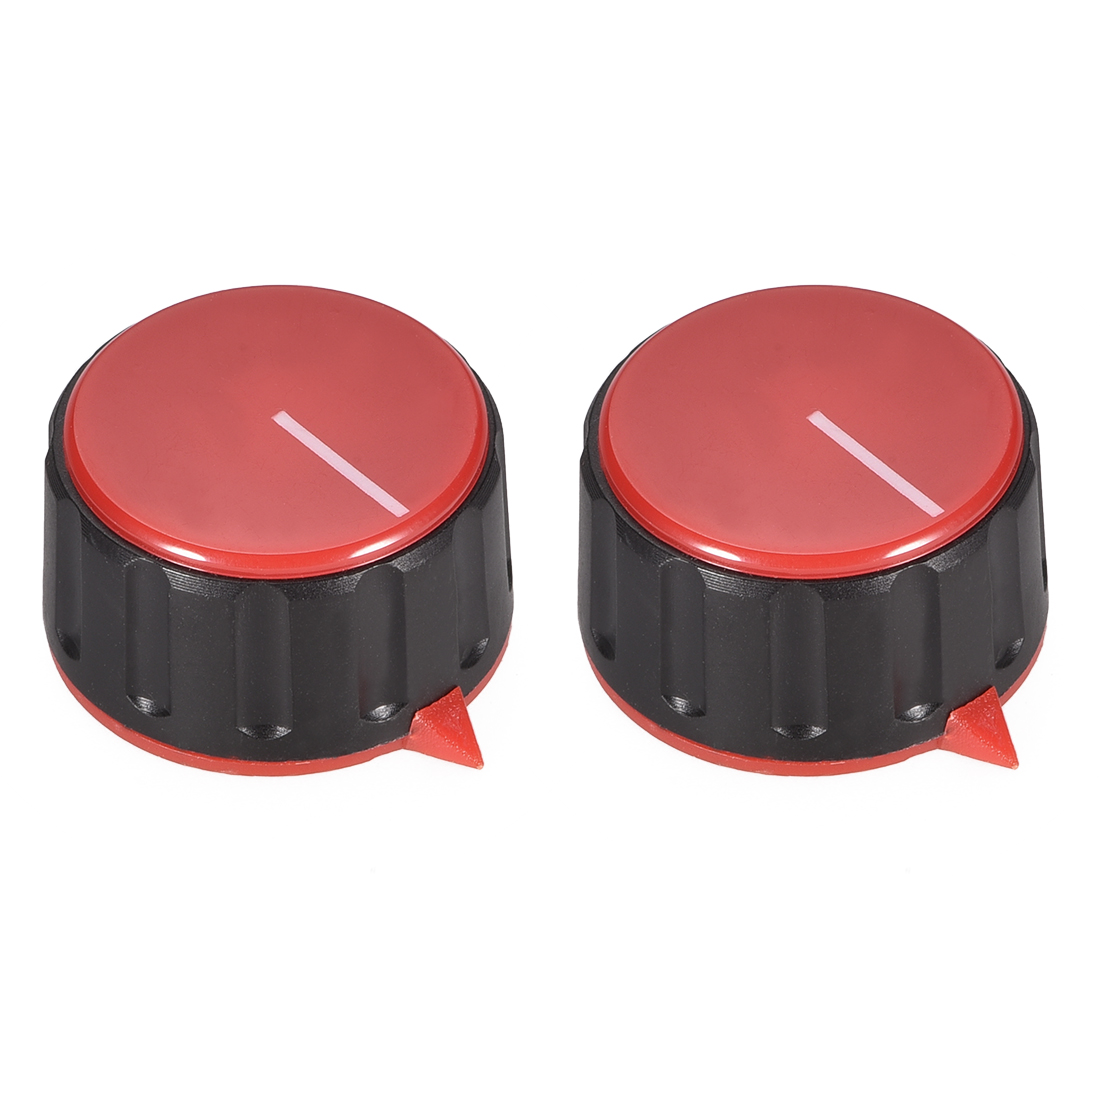 2pcs 6mm Potentiometer Control Knobs For Guitar Acrylic Volume Tone Knobs Red